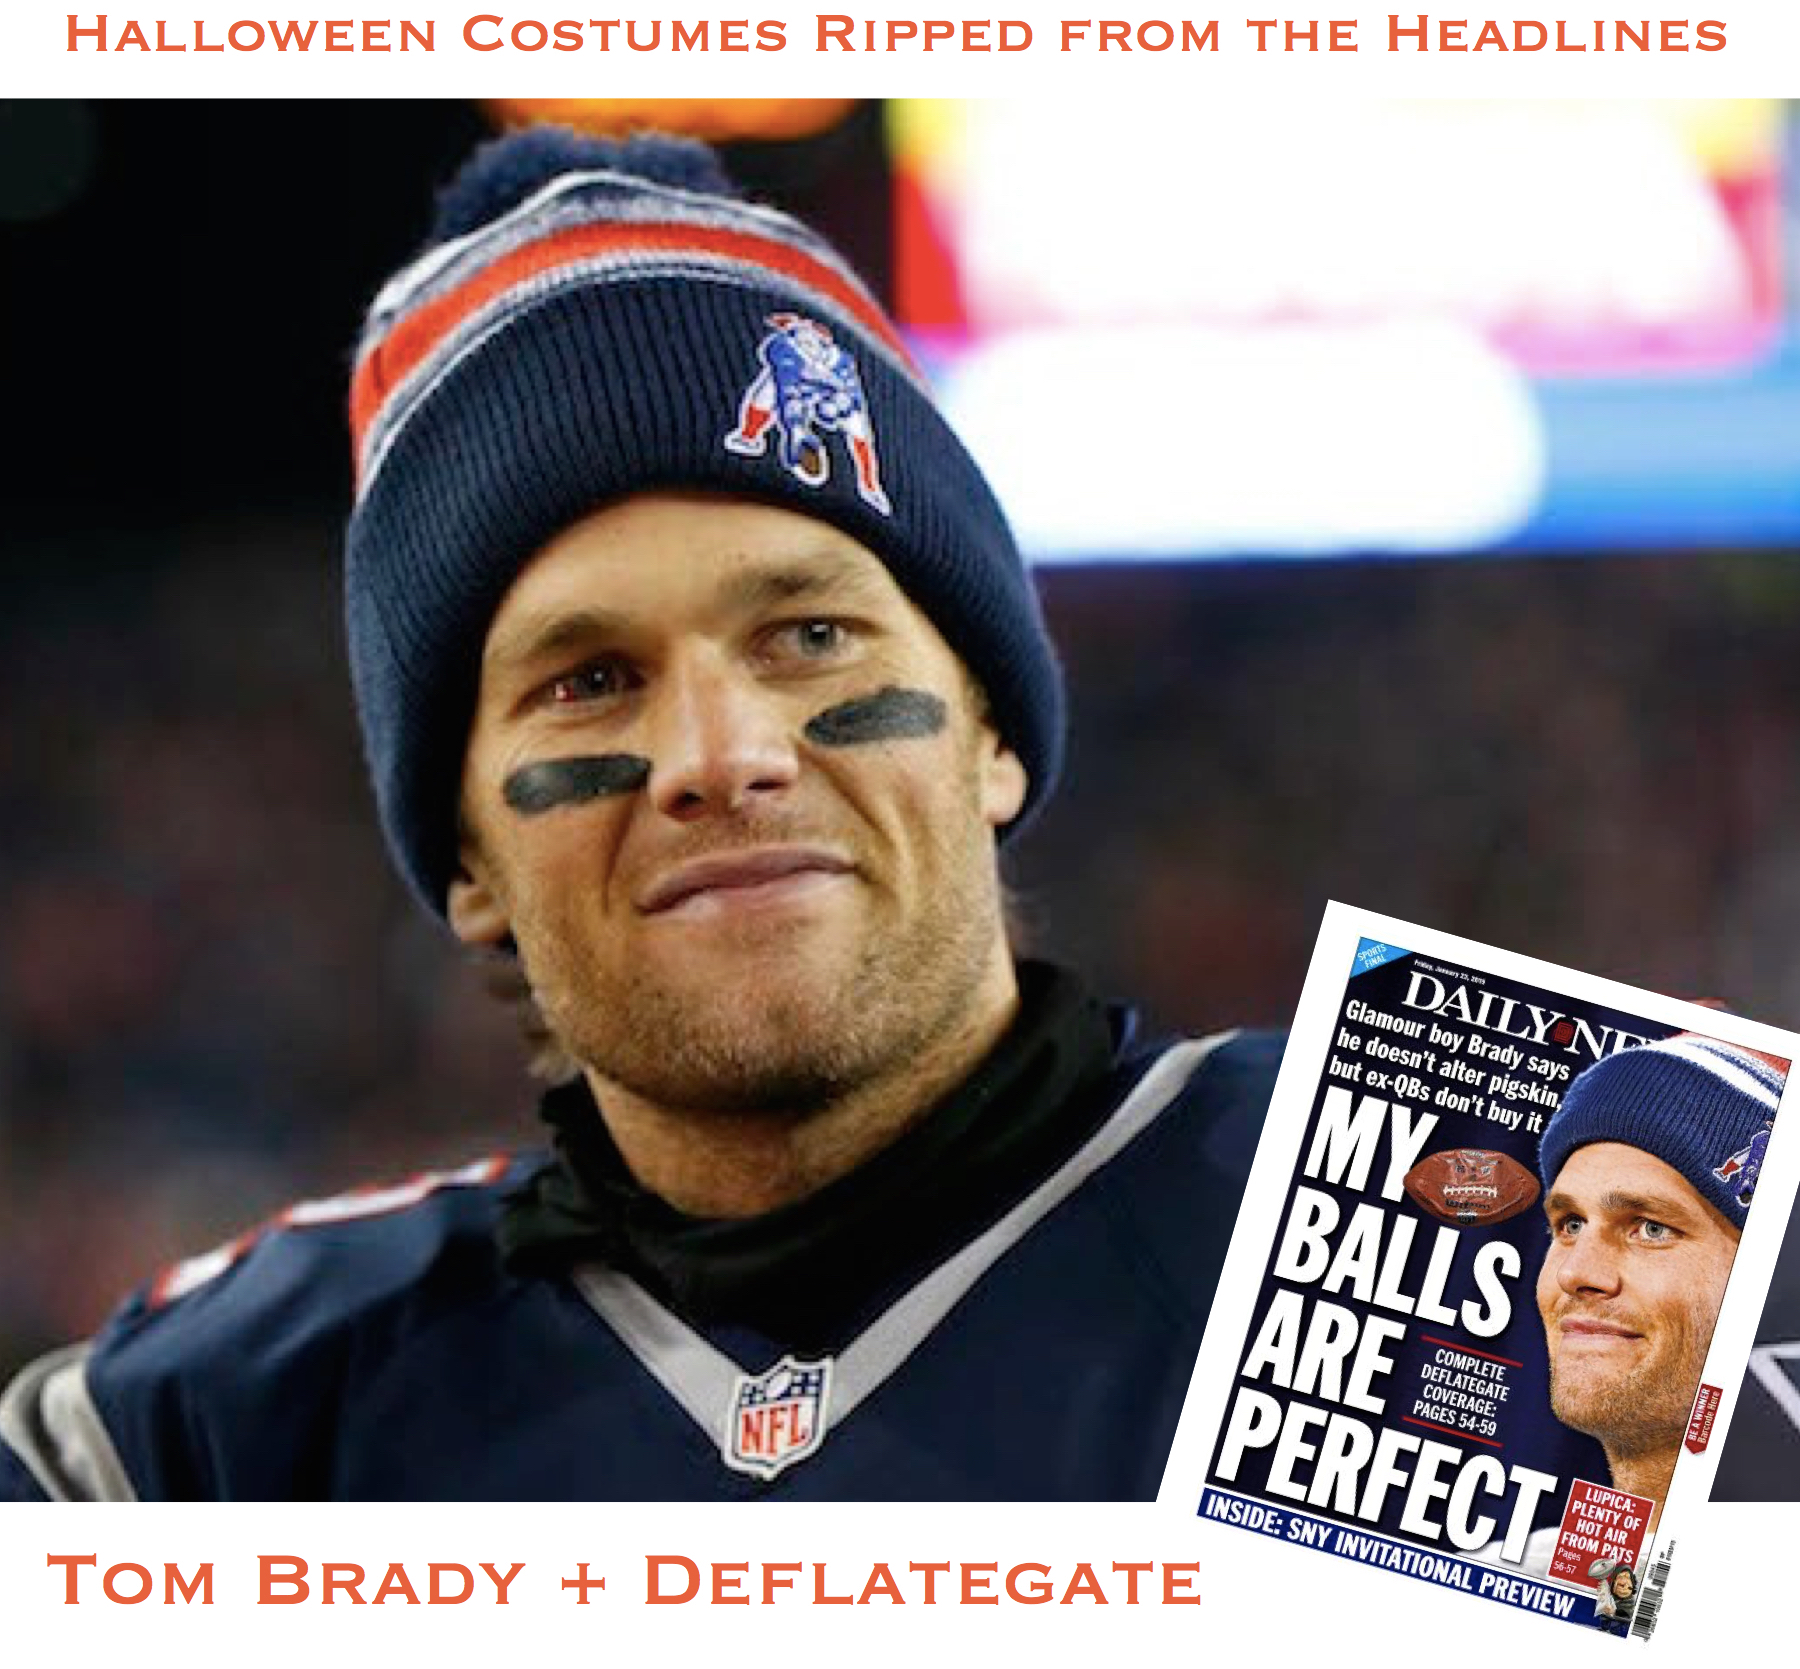 Halloween Costumes Ripped from the Headlines Tom Brady Deflategate  sc 1 st  GreatGets.com & Halloween Costumes Ripped from the Headlines | GreatGets.com